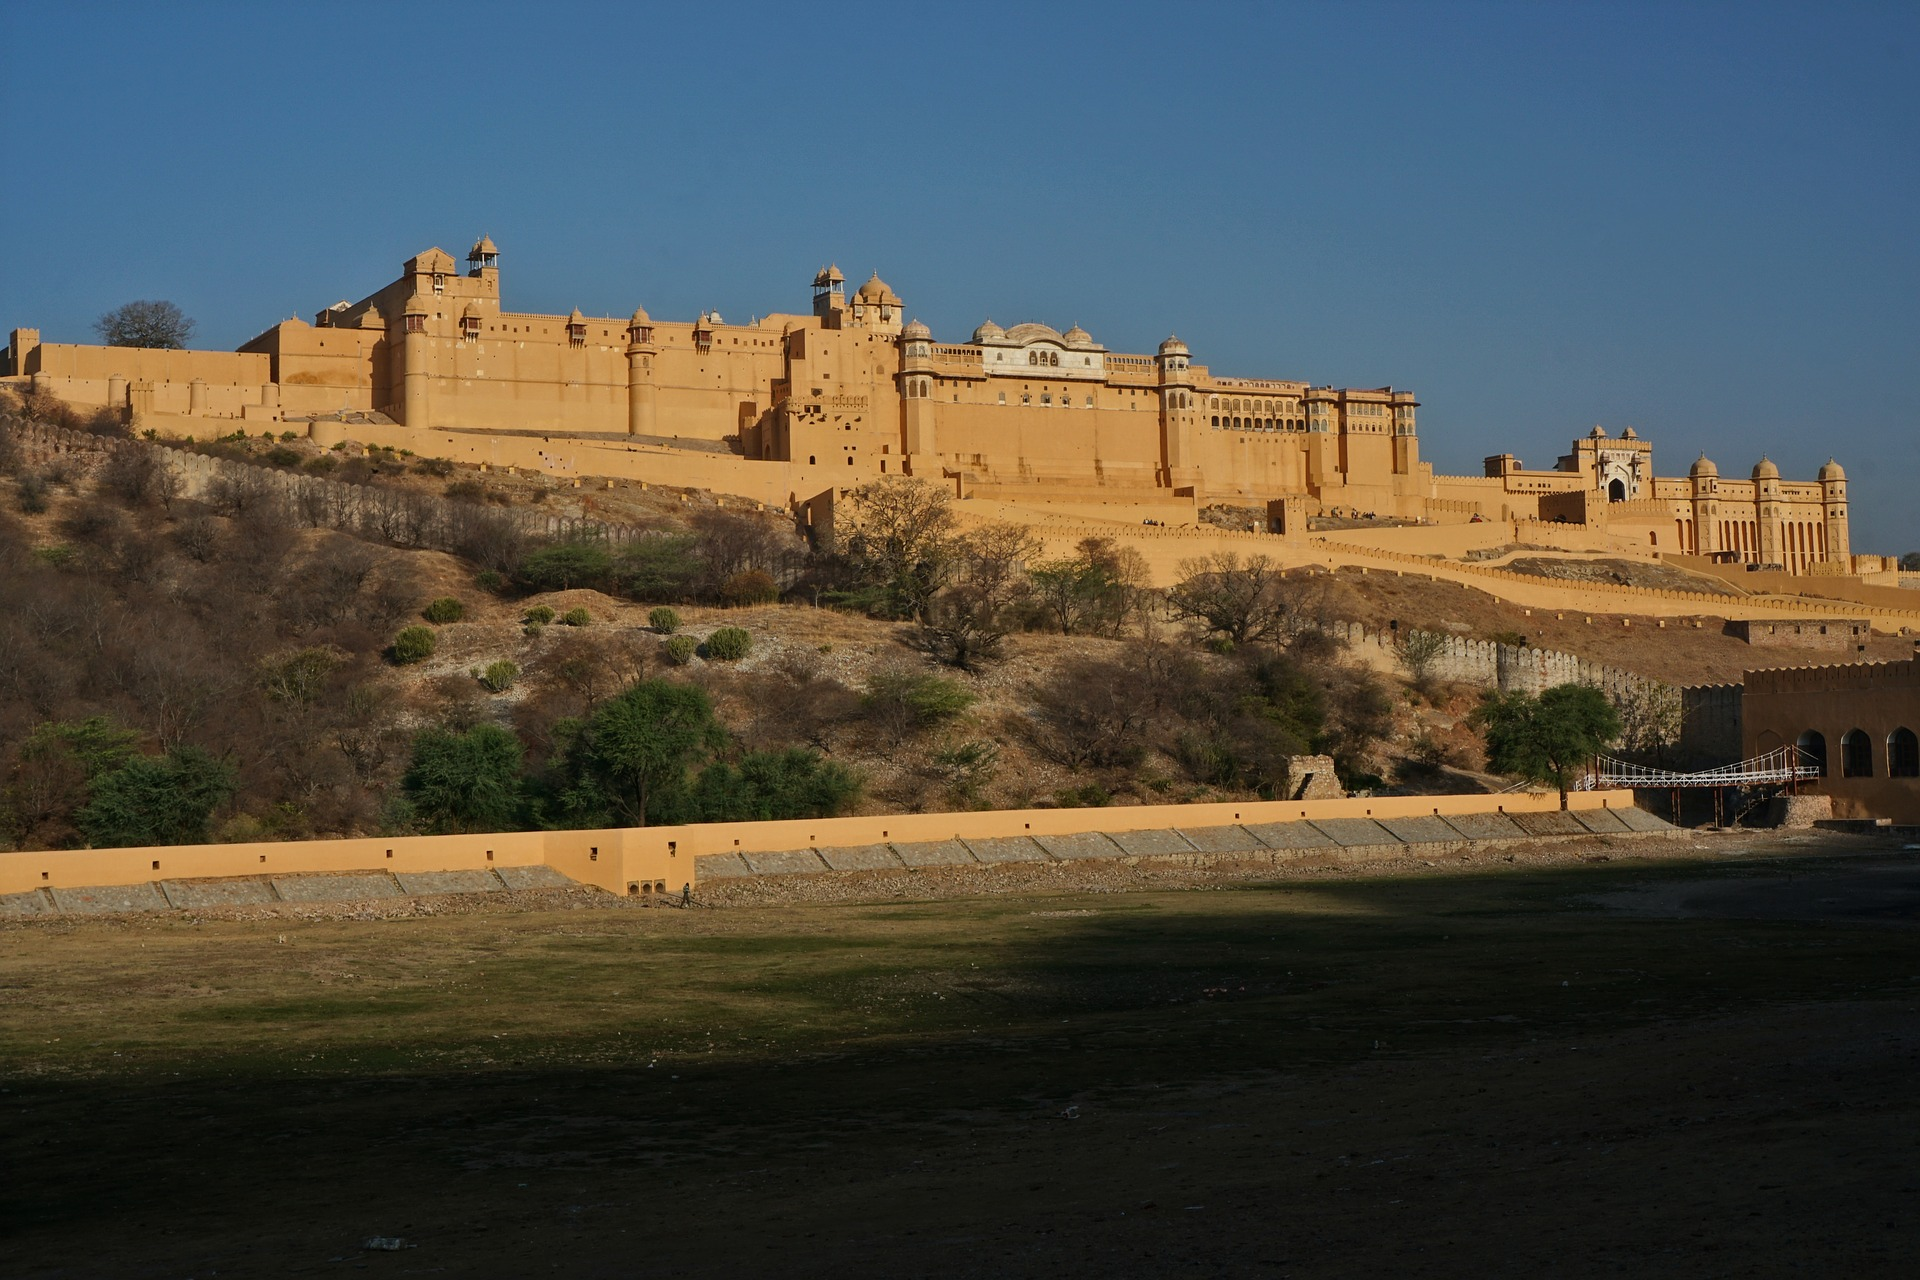 India's Golden Triangle & Tiger Safari - Amber Fort, Amer, India